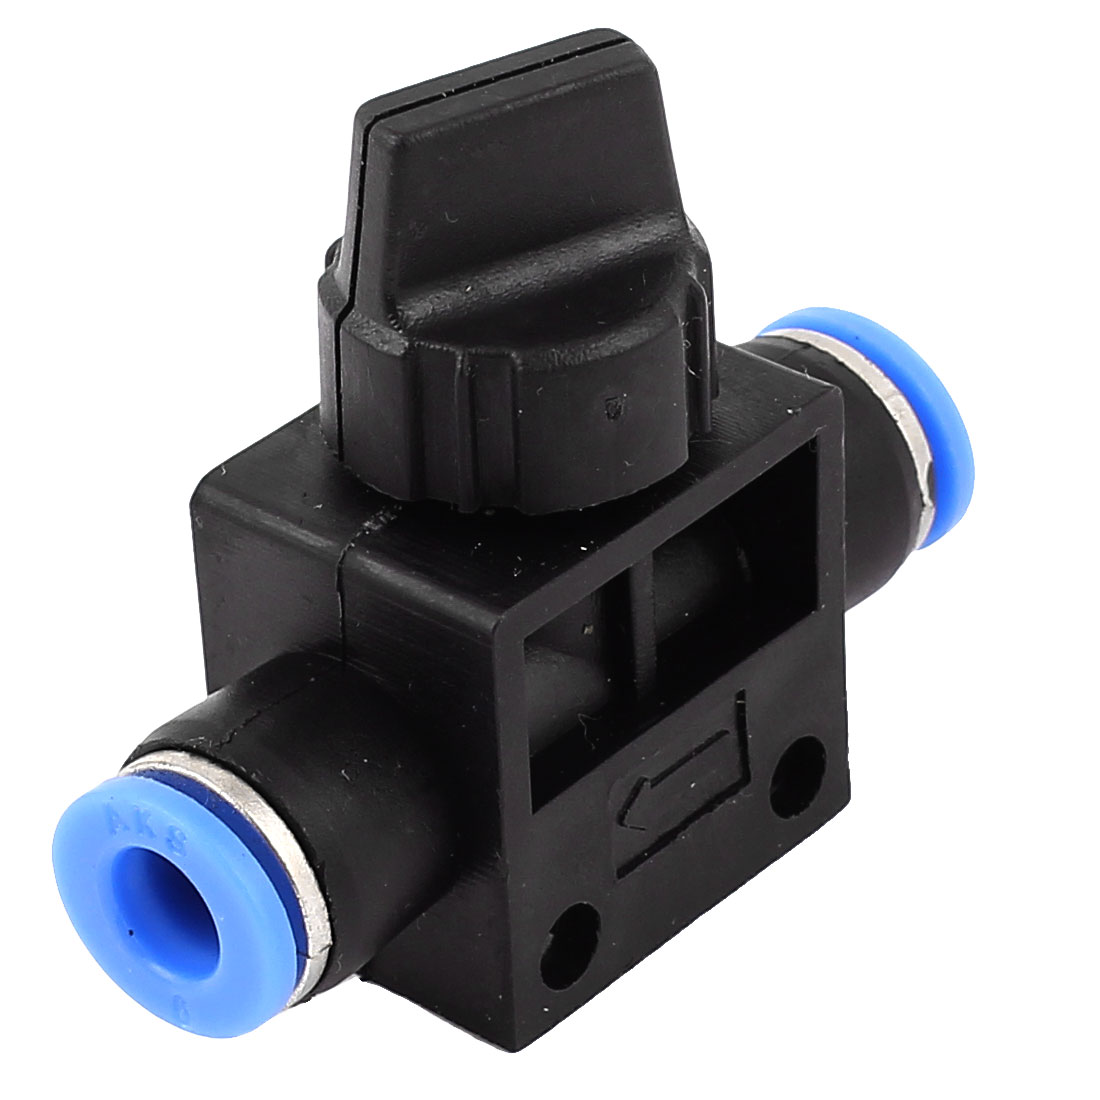 6mm to 6mm Air Pneumatic Quick Release Fitting Connector Speed Controller Valve